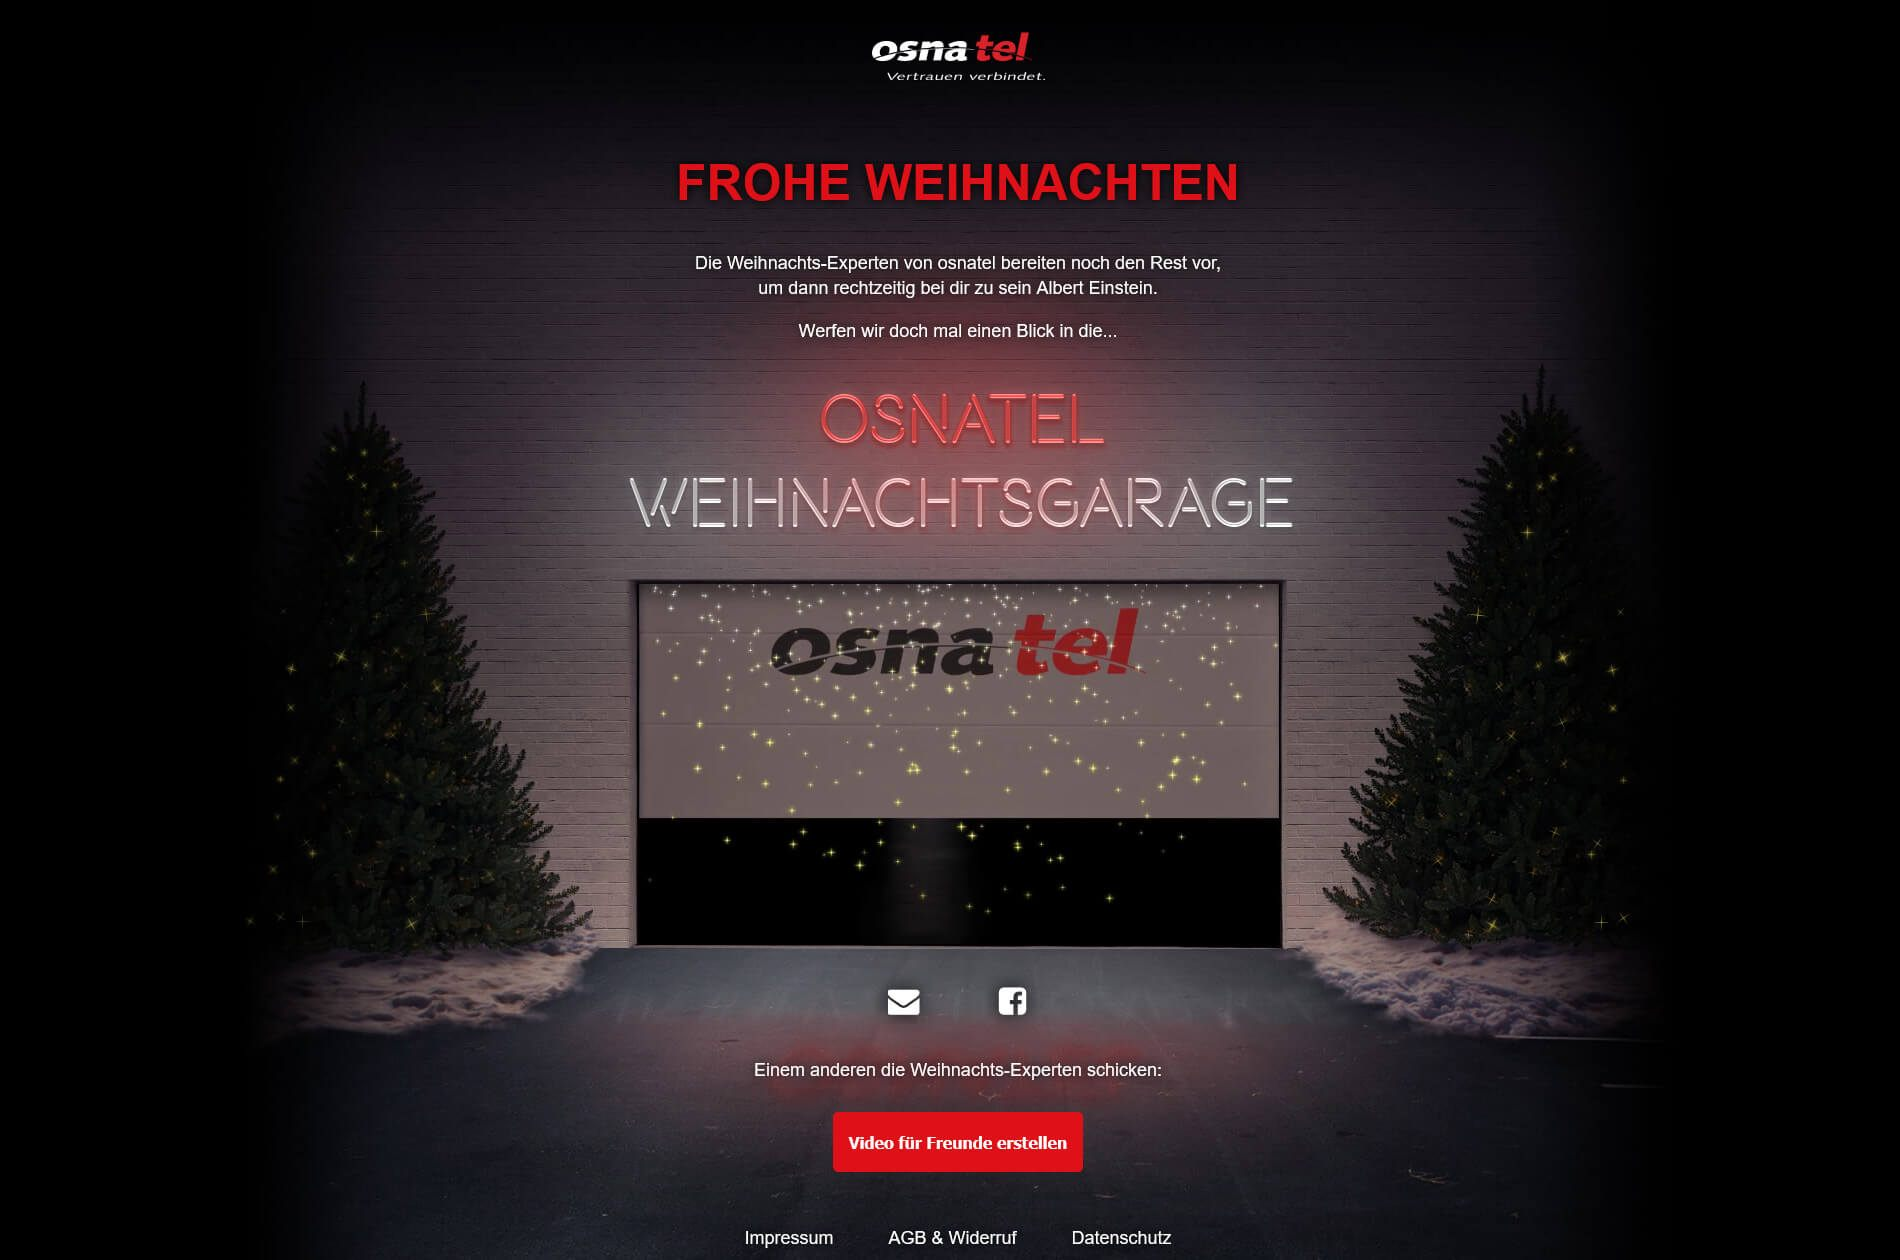 osnatel-weihnachtsgruss-2017-website-desktop